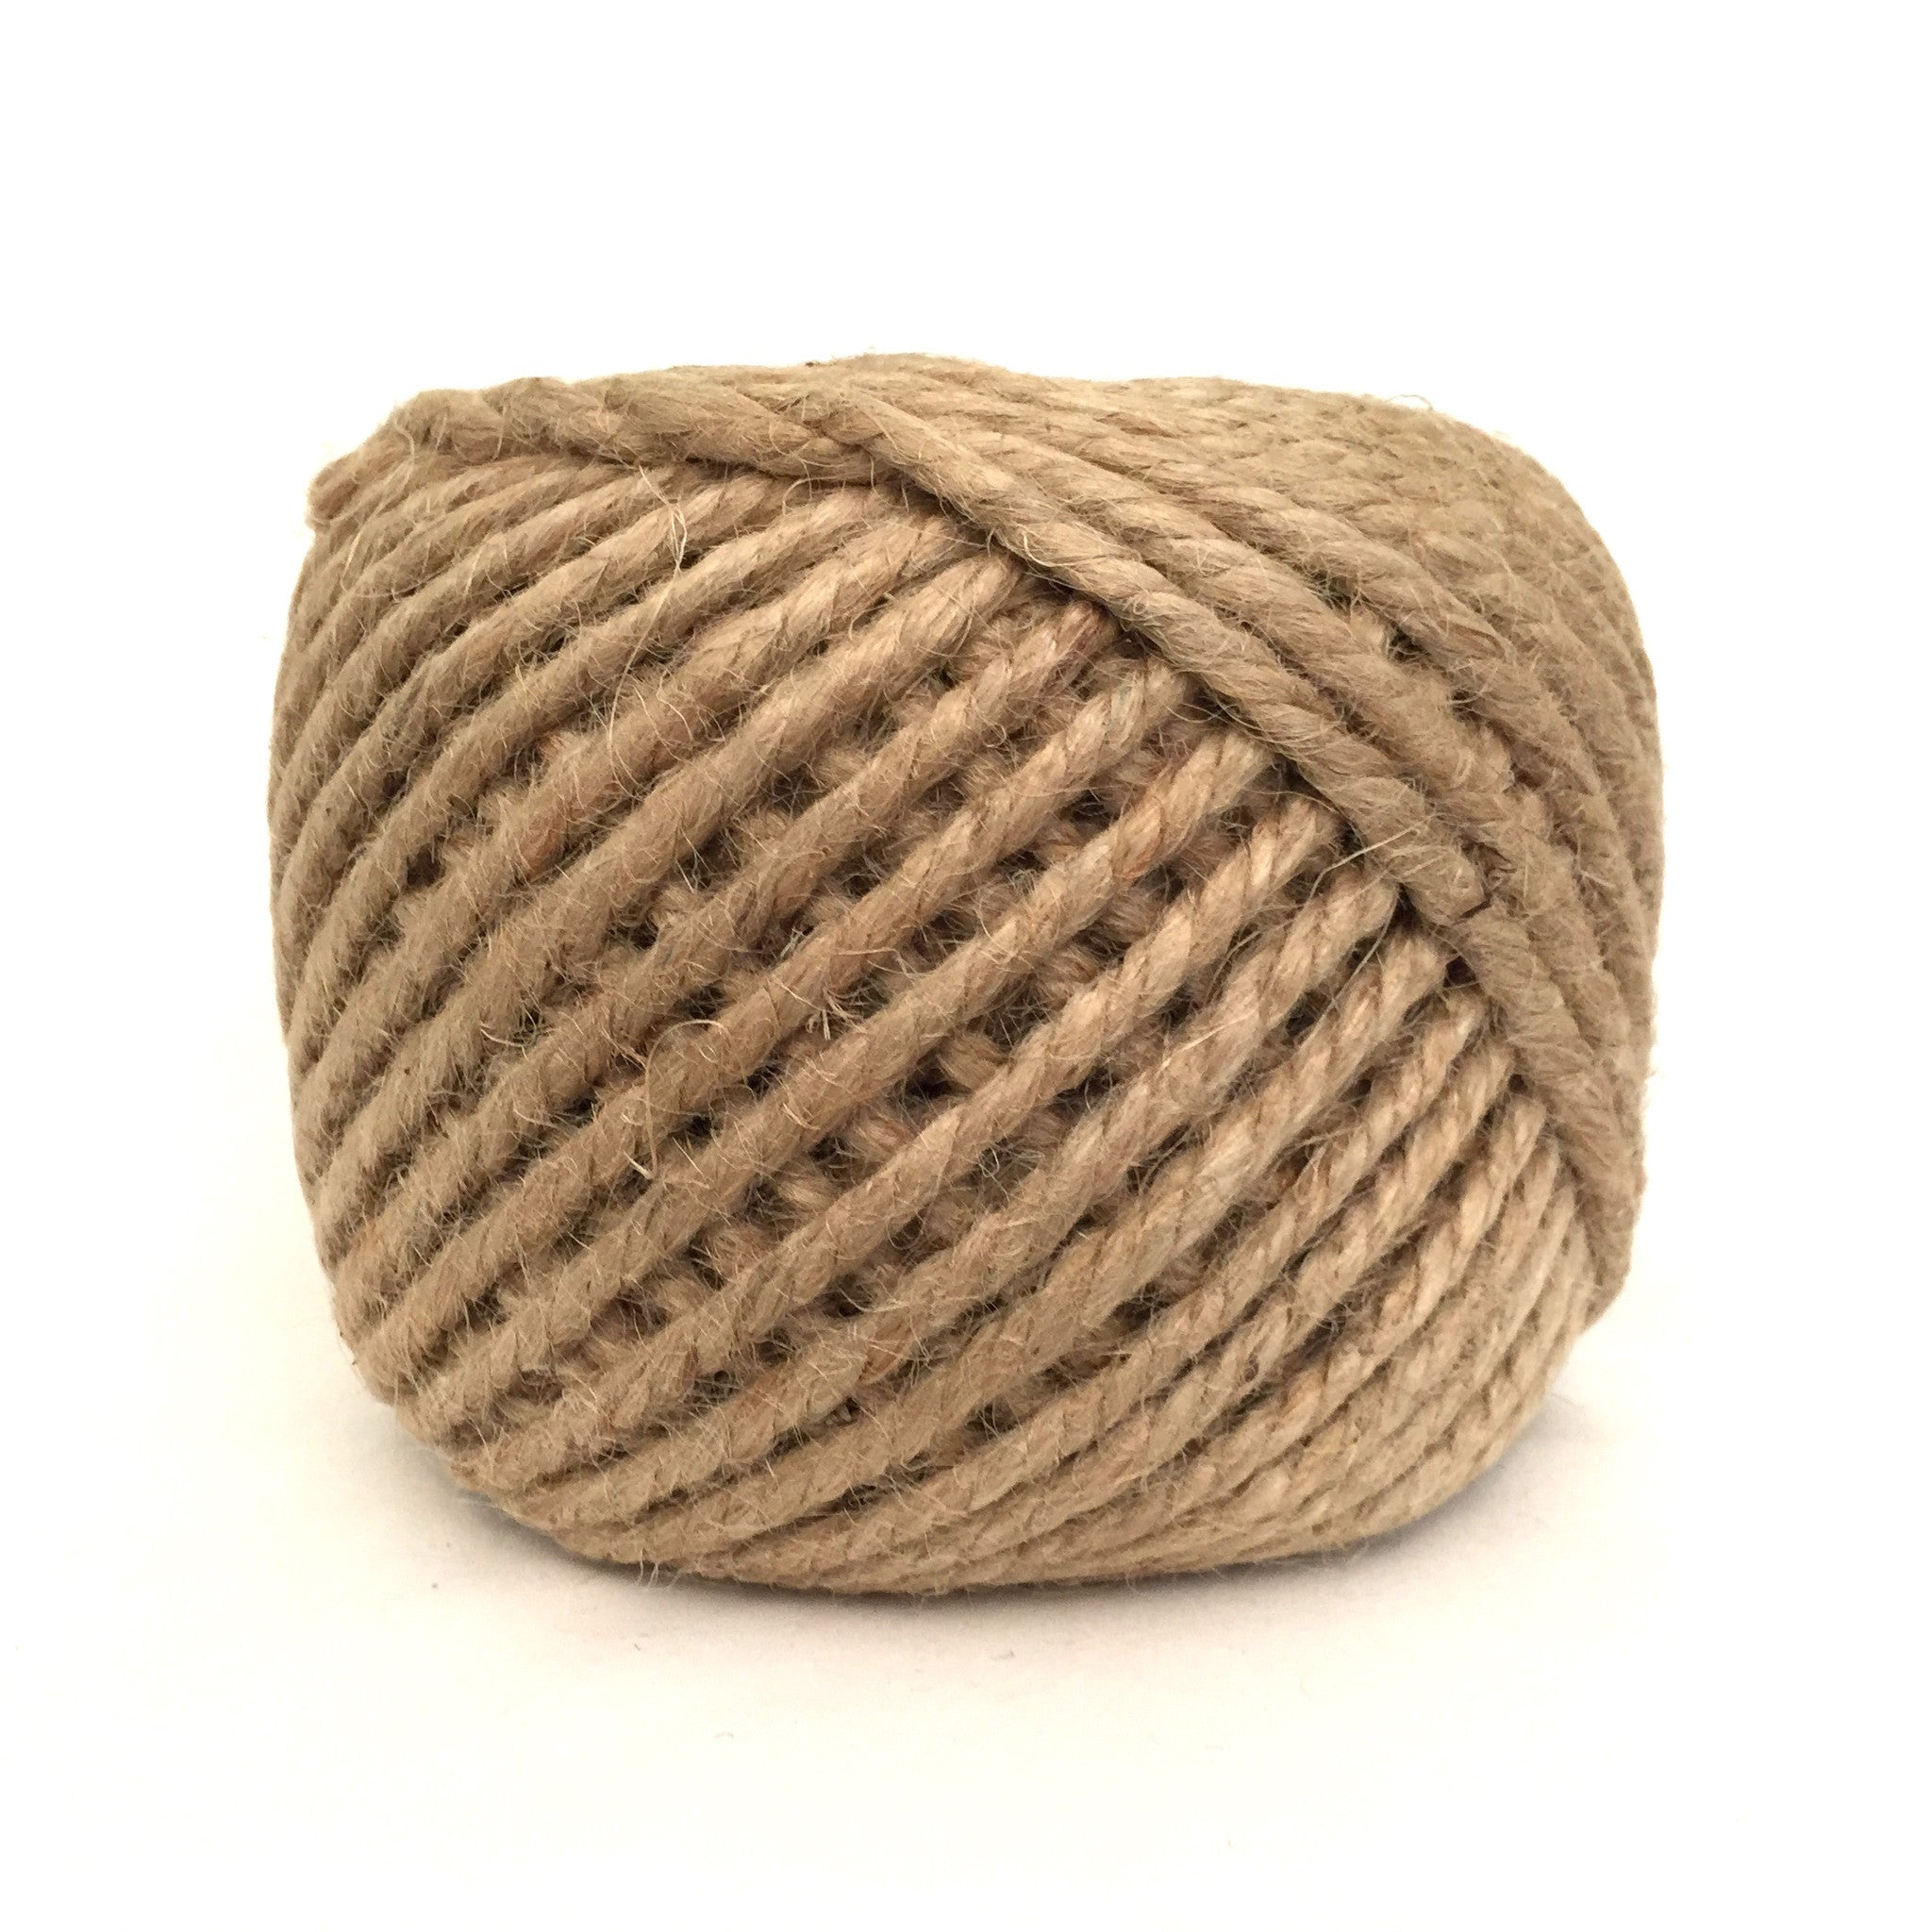 Chunky Jute Balls - The Potting Shed Garden Tools